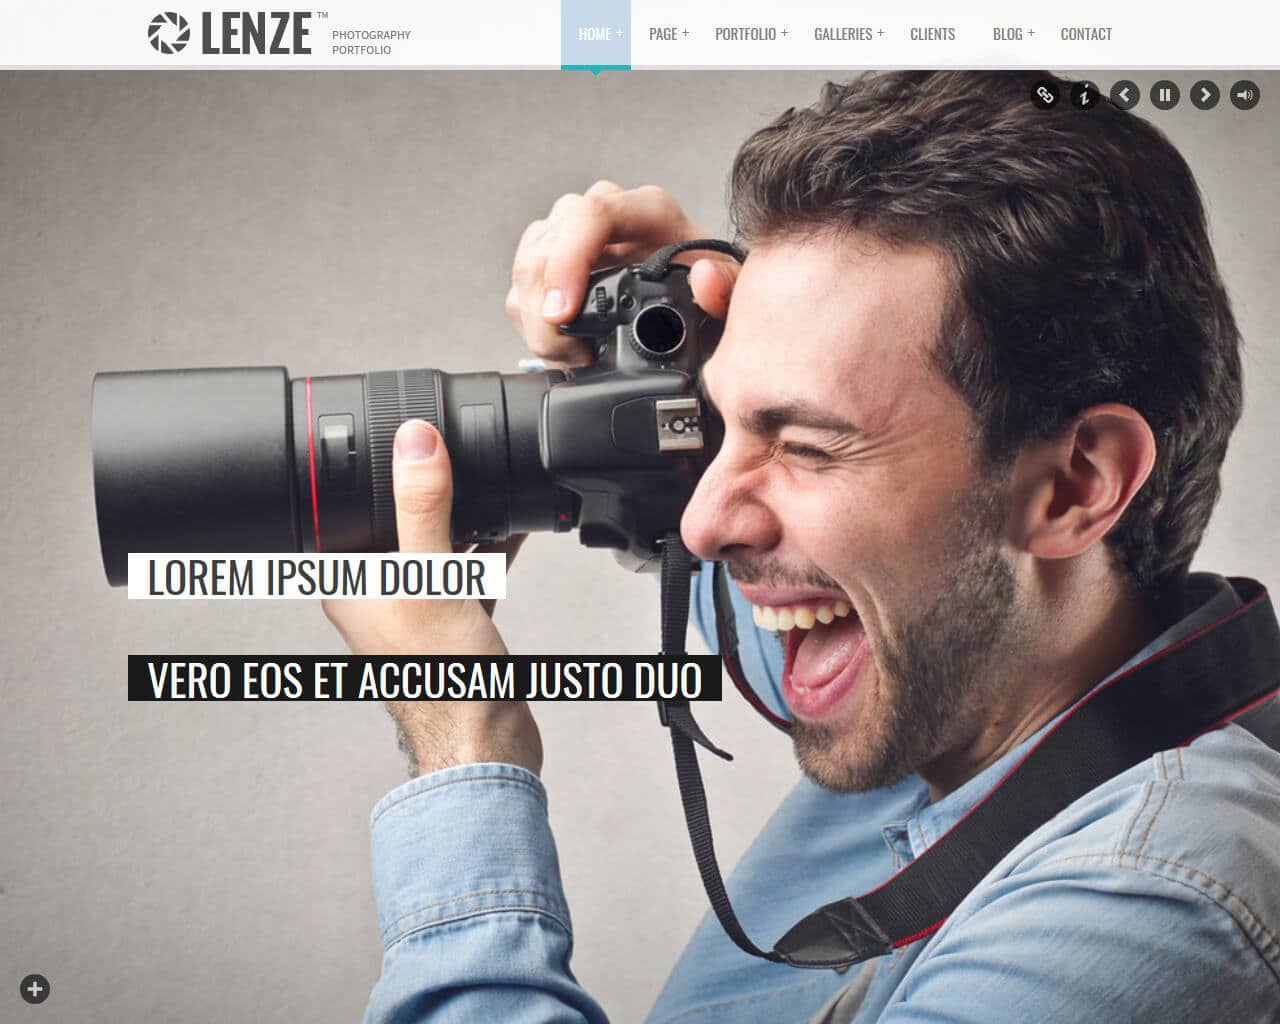 Lenze Website Template